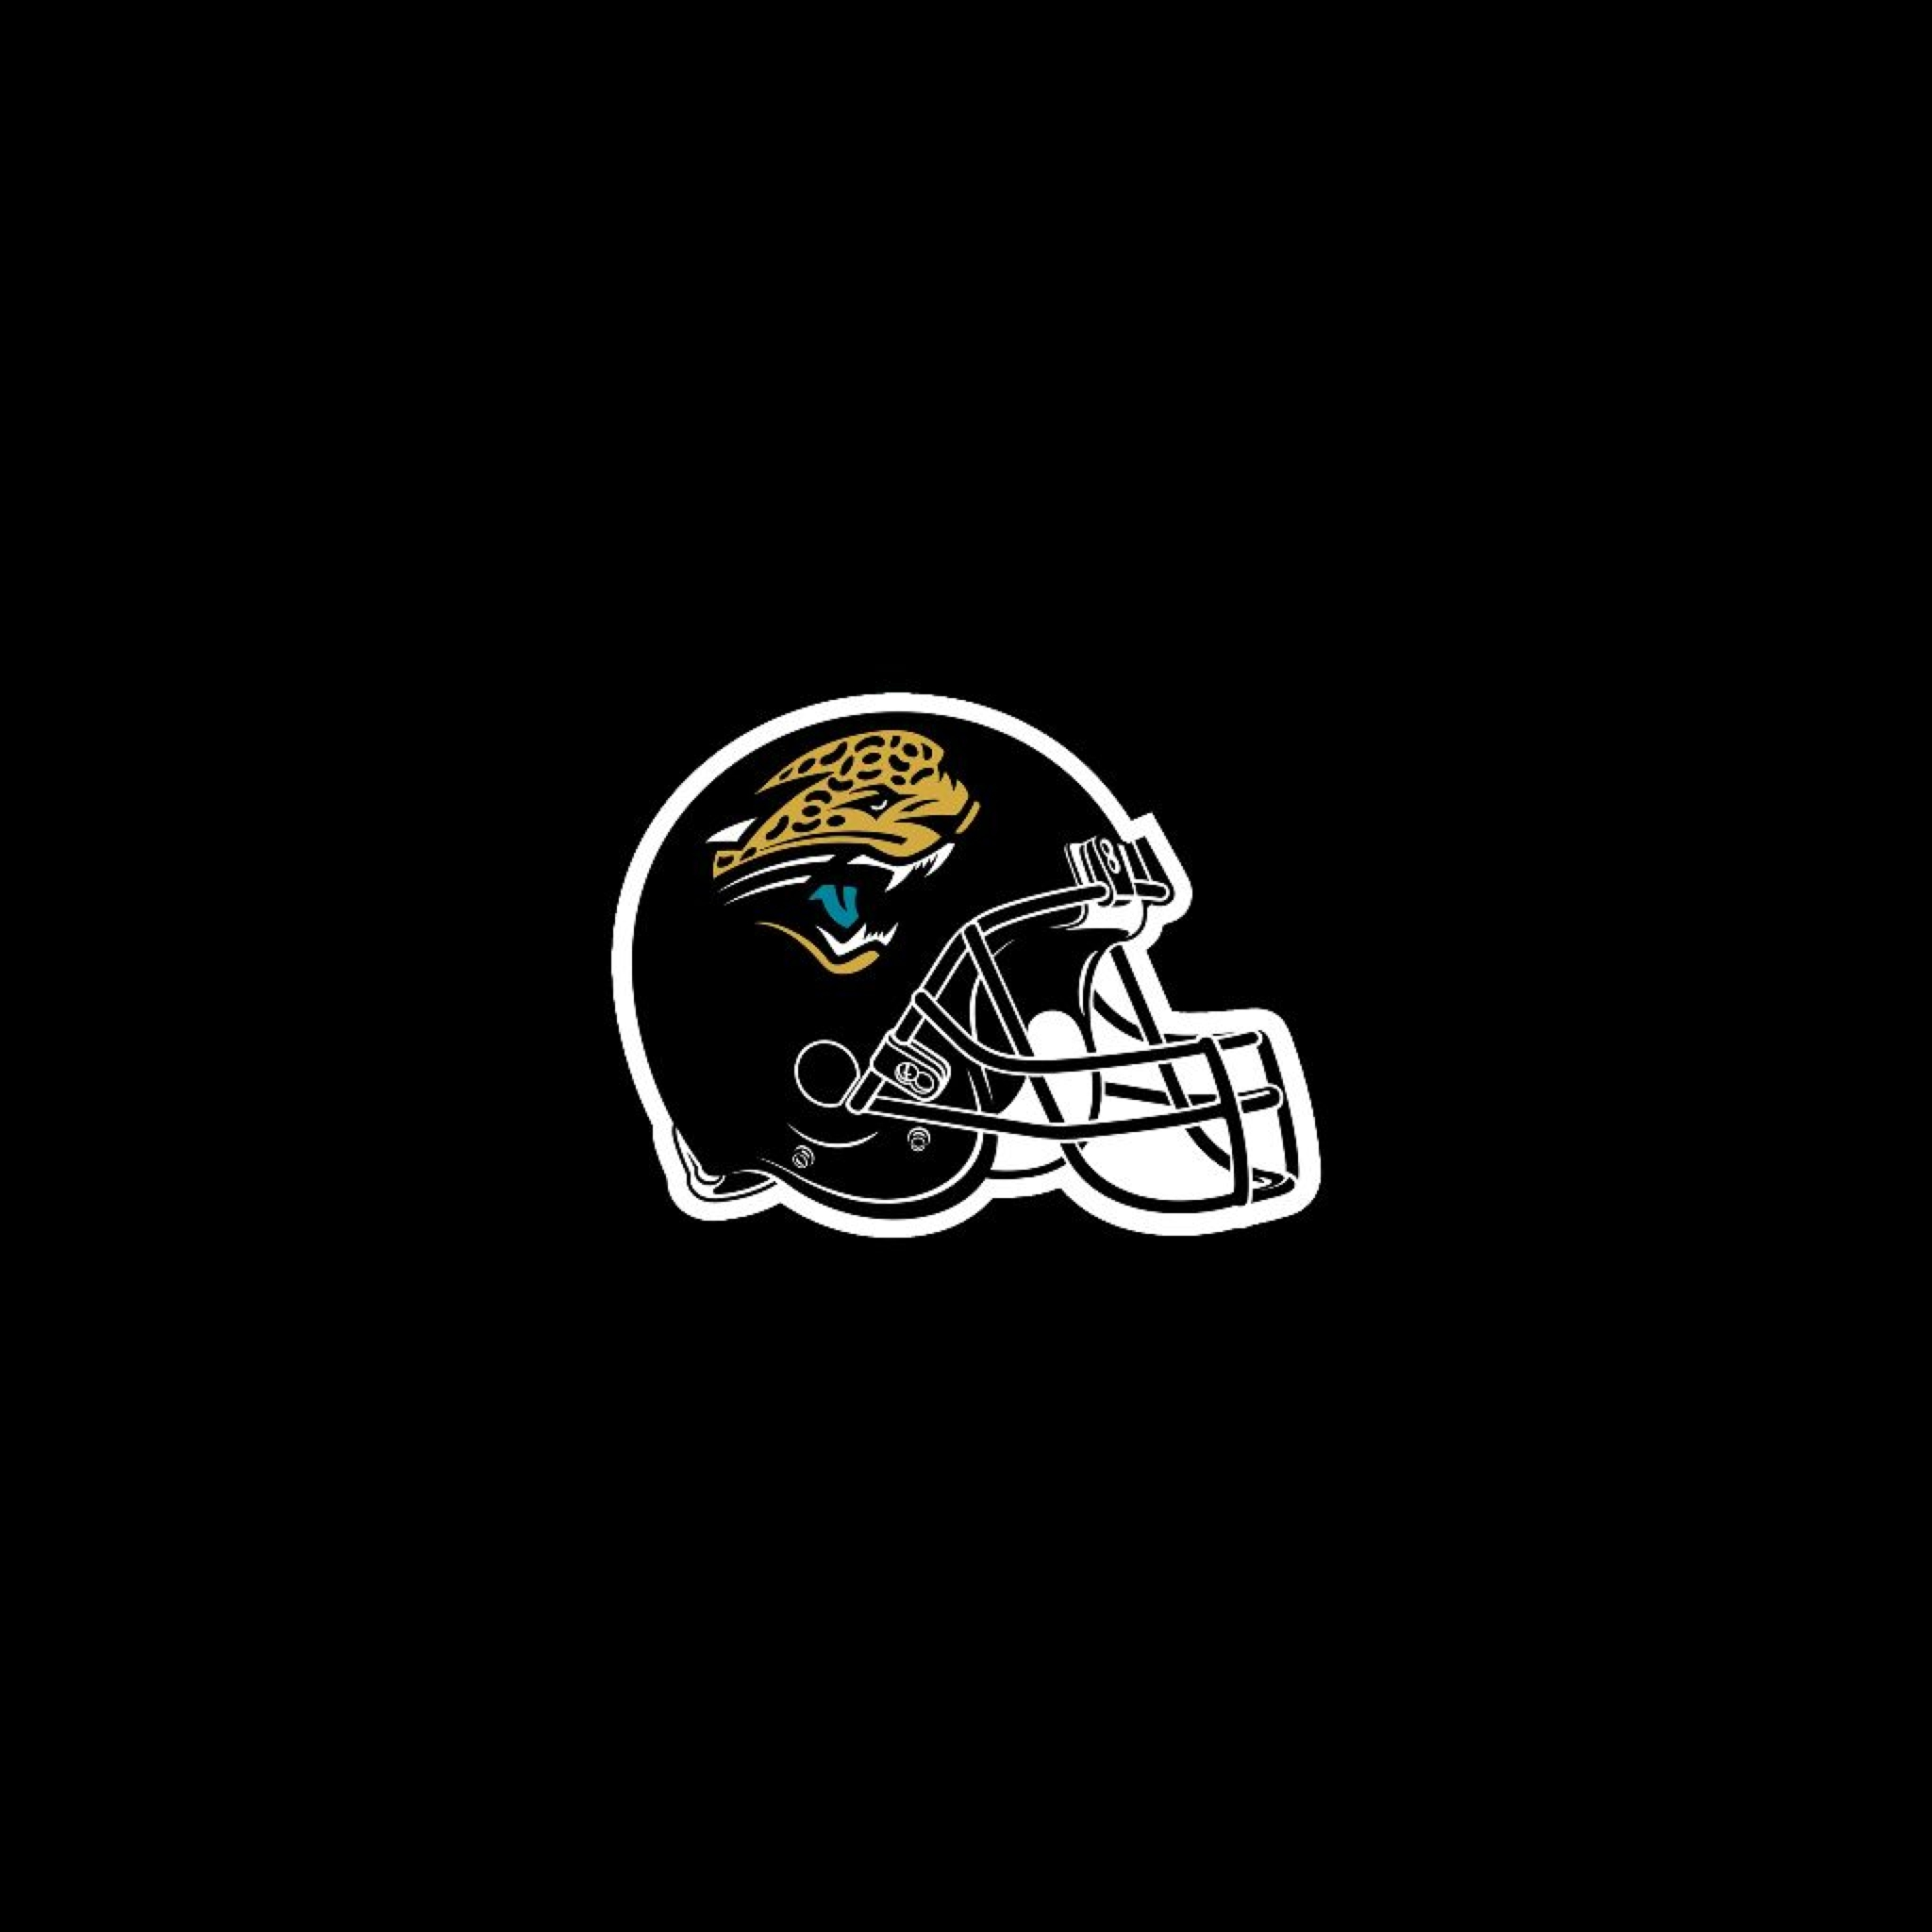 Jacksonville Jaguars Helm iPad 3 Wallpaper und iPad 4 Wallpaper 2048x2048